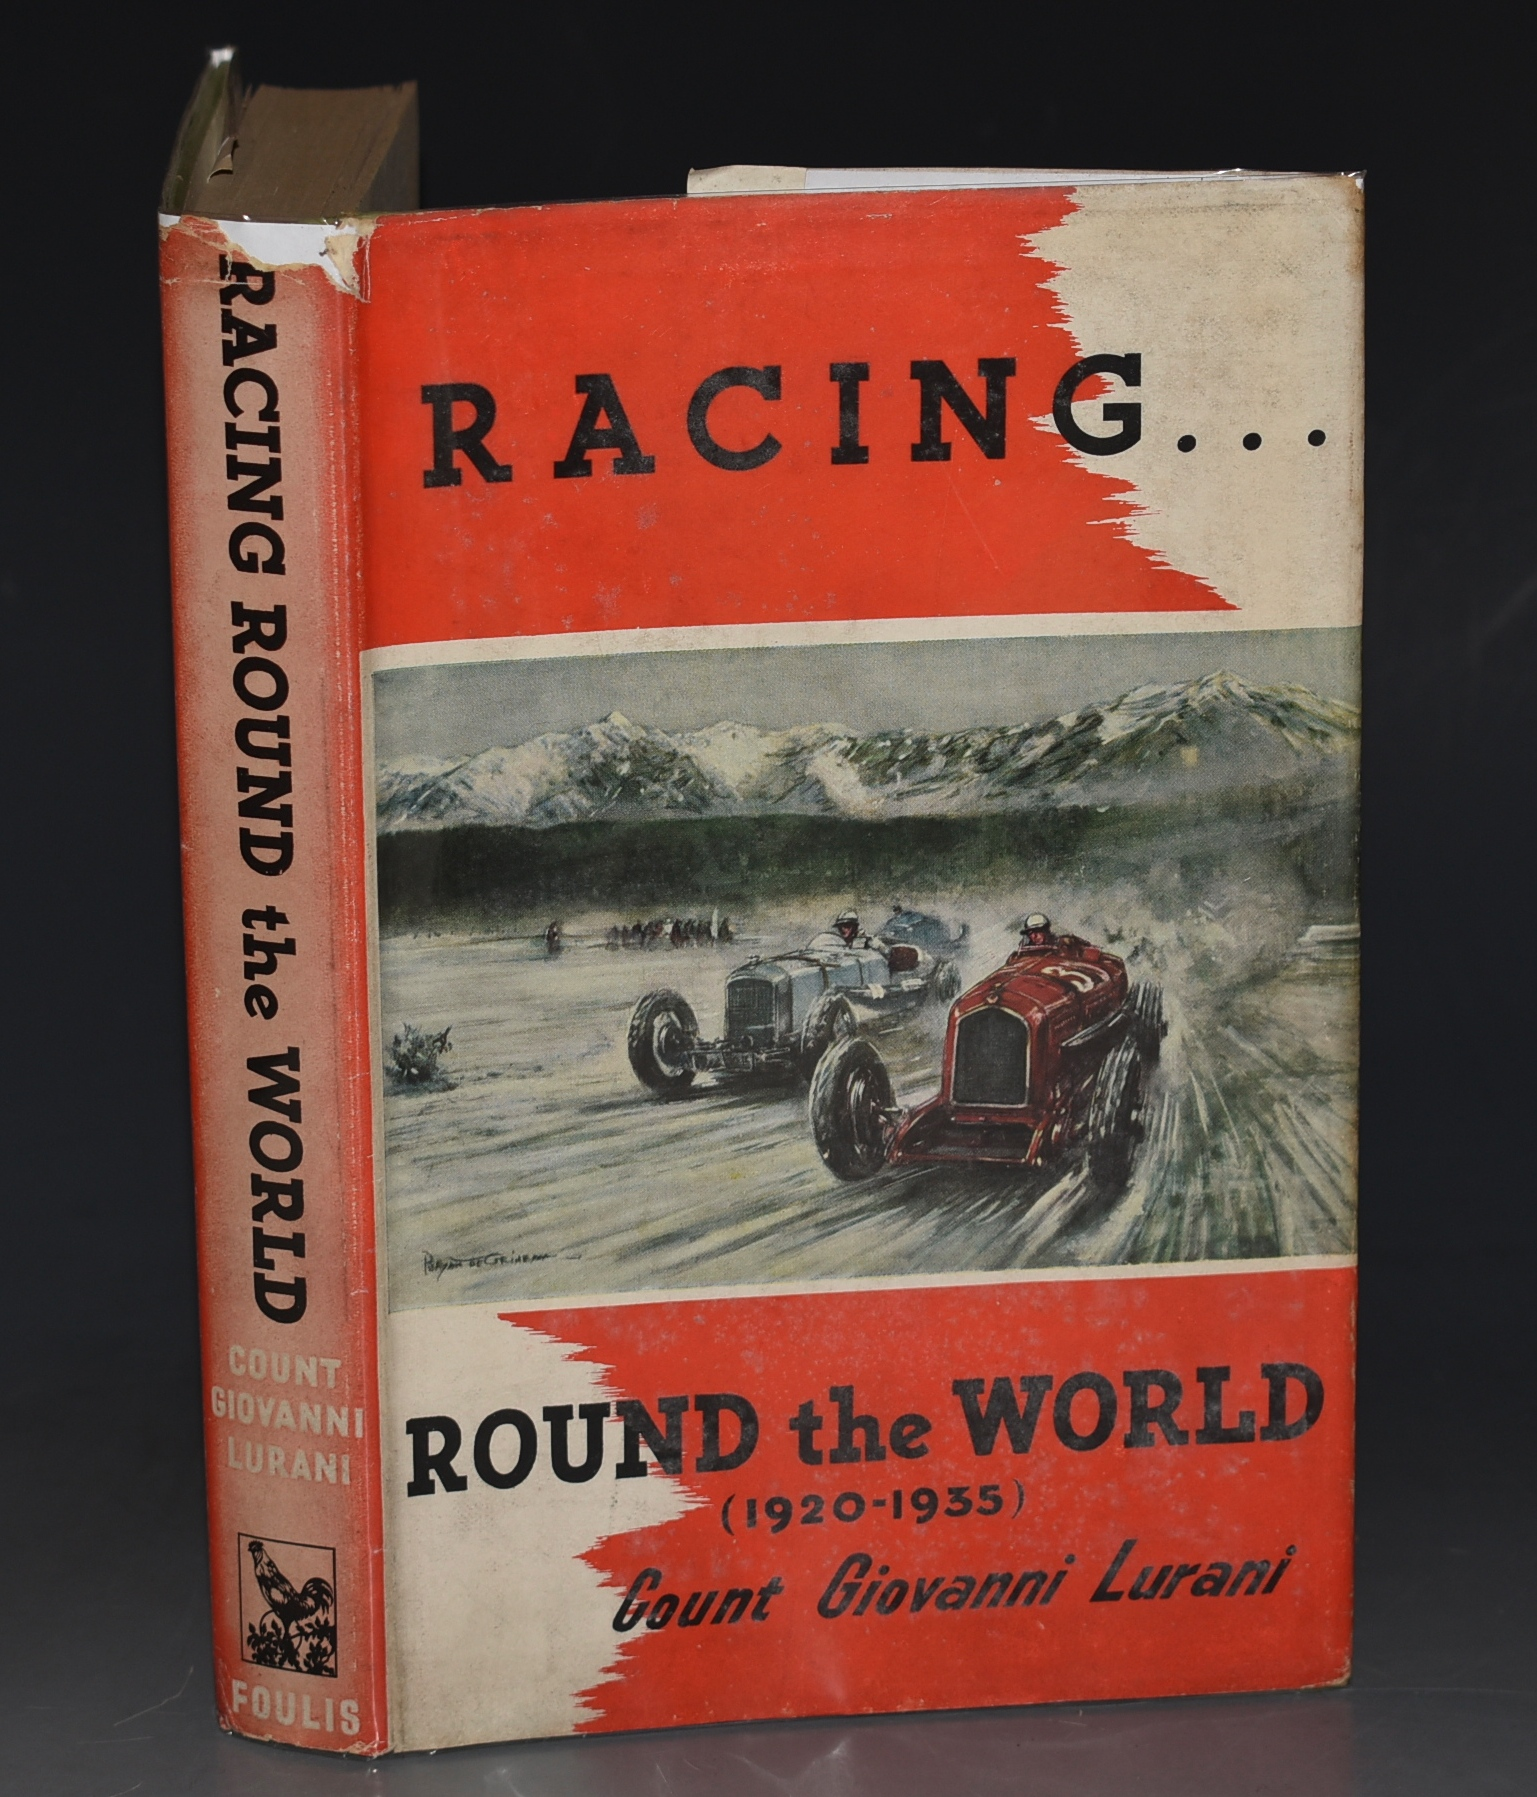 Image for Racing Round The World (1920 - 1935) Translated by John Eason-Gibson.